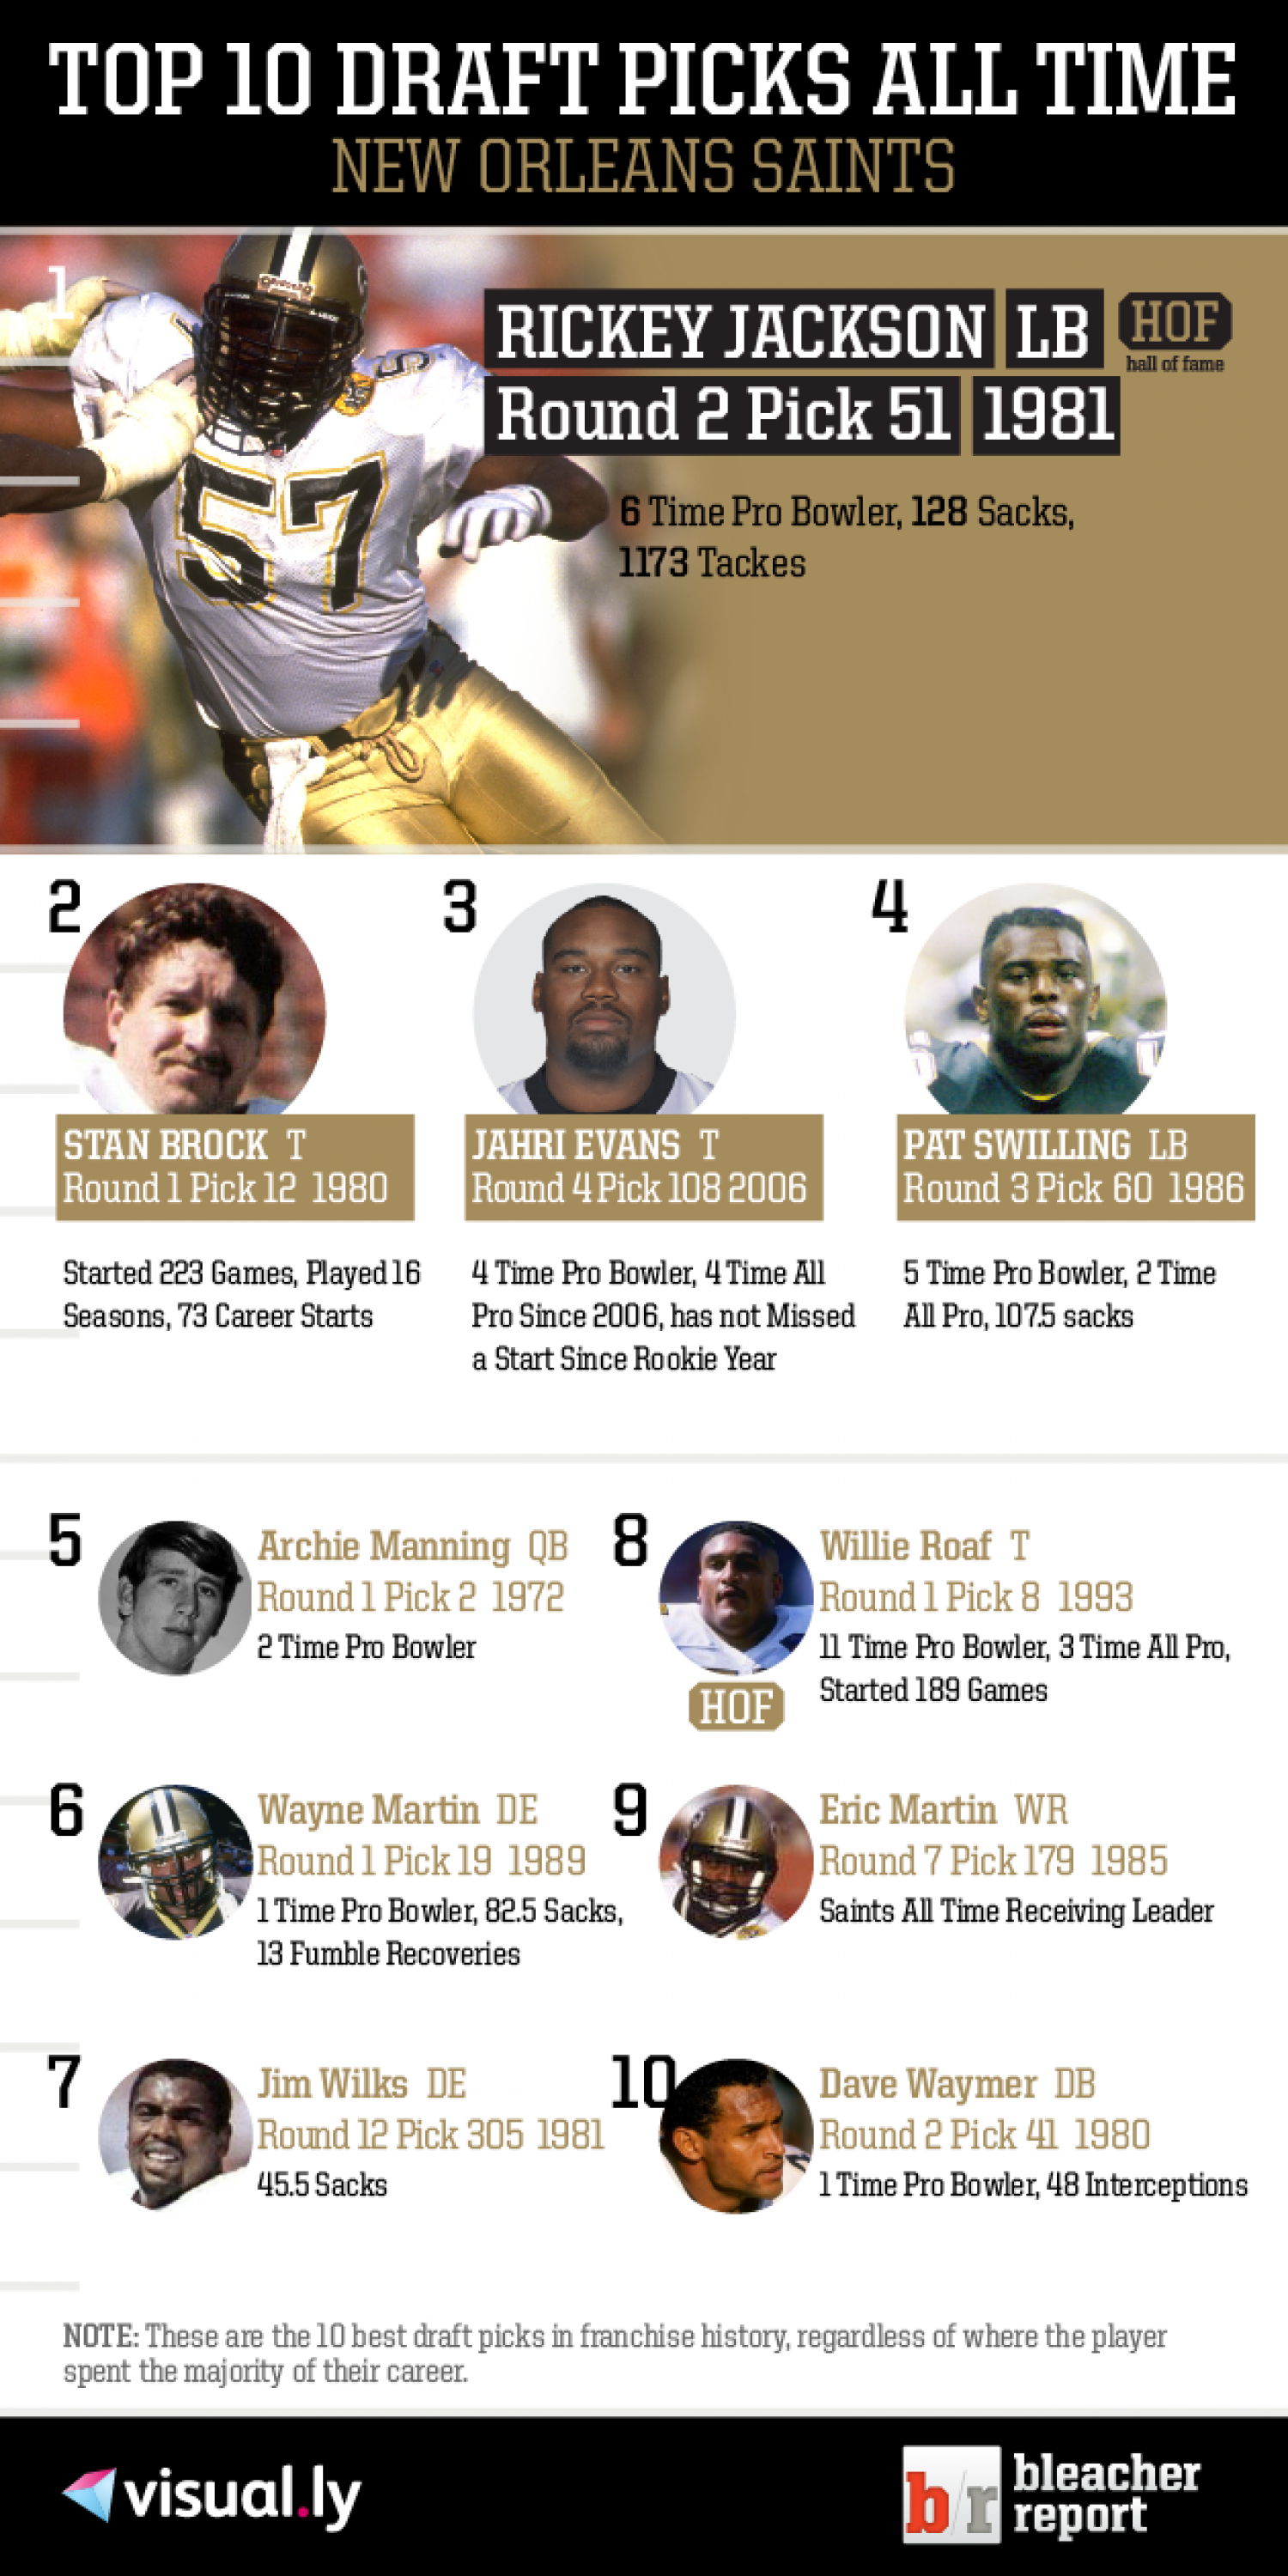 Top 10 Draft Picks of All Time: New Orleans Saints Infographic